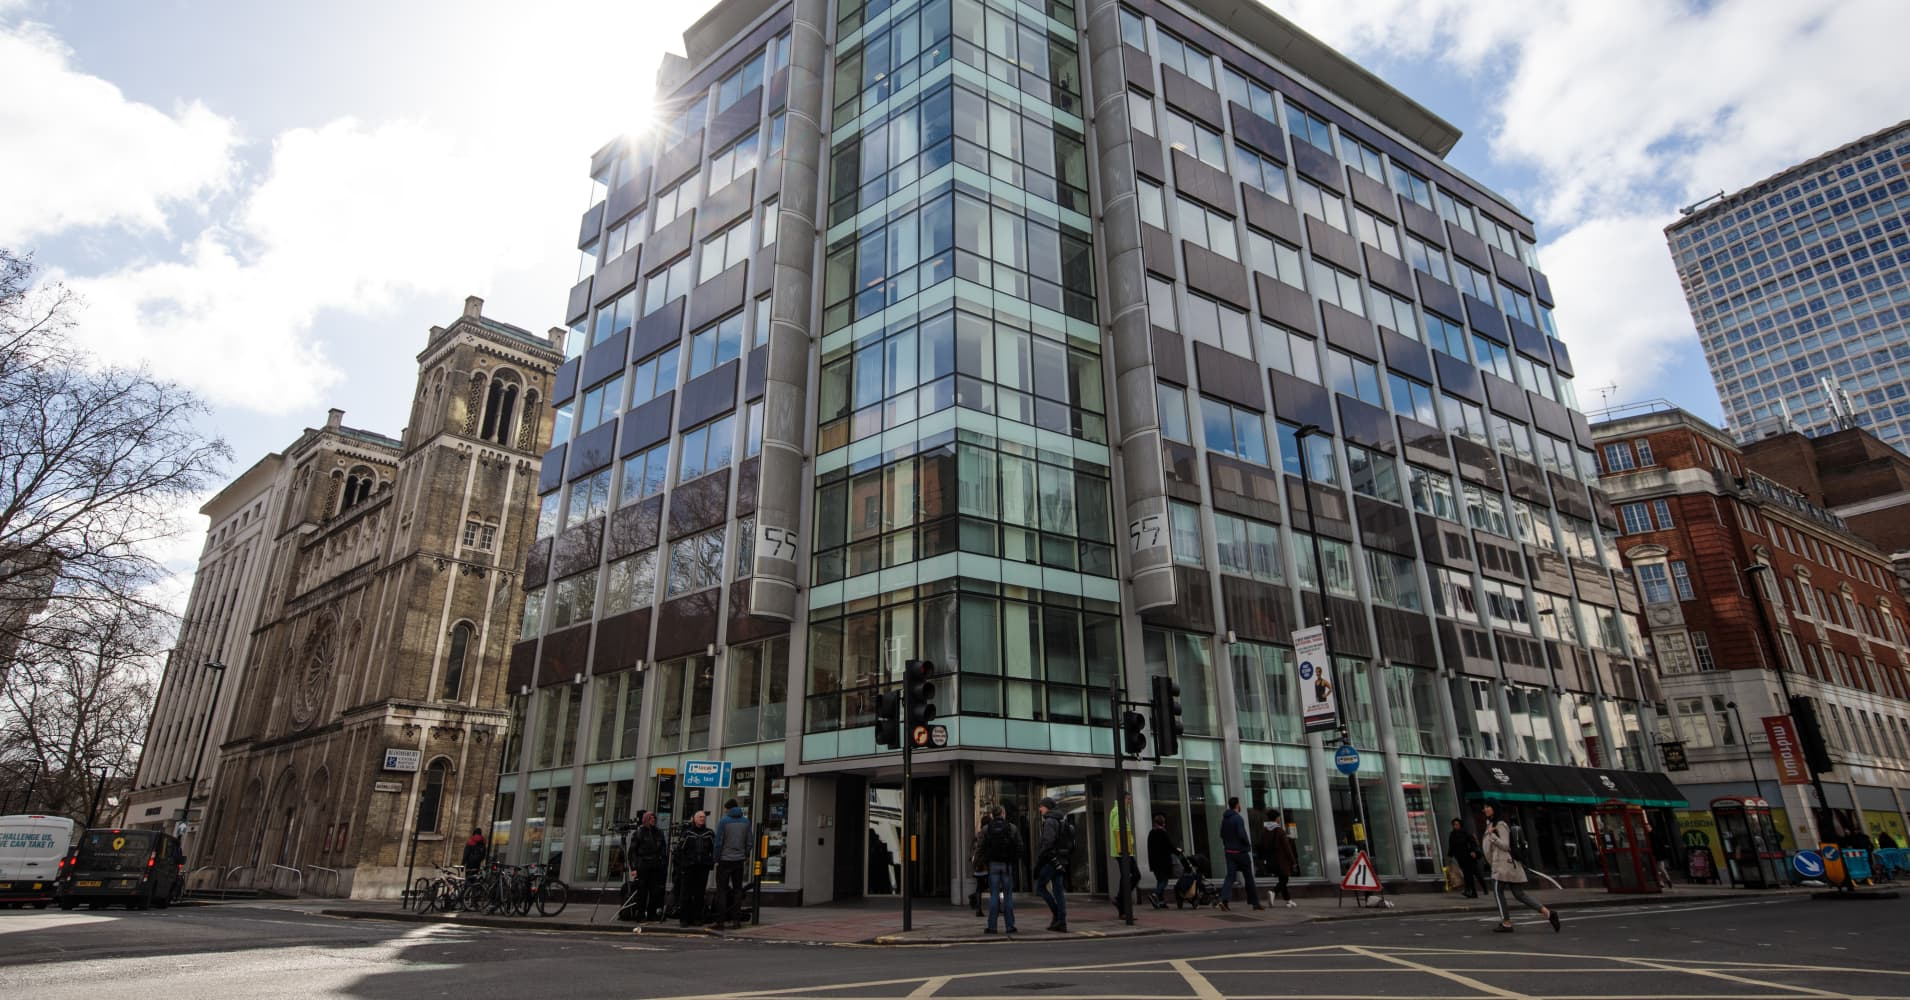 Suspicious package found near London offices